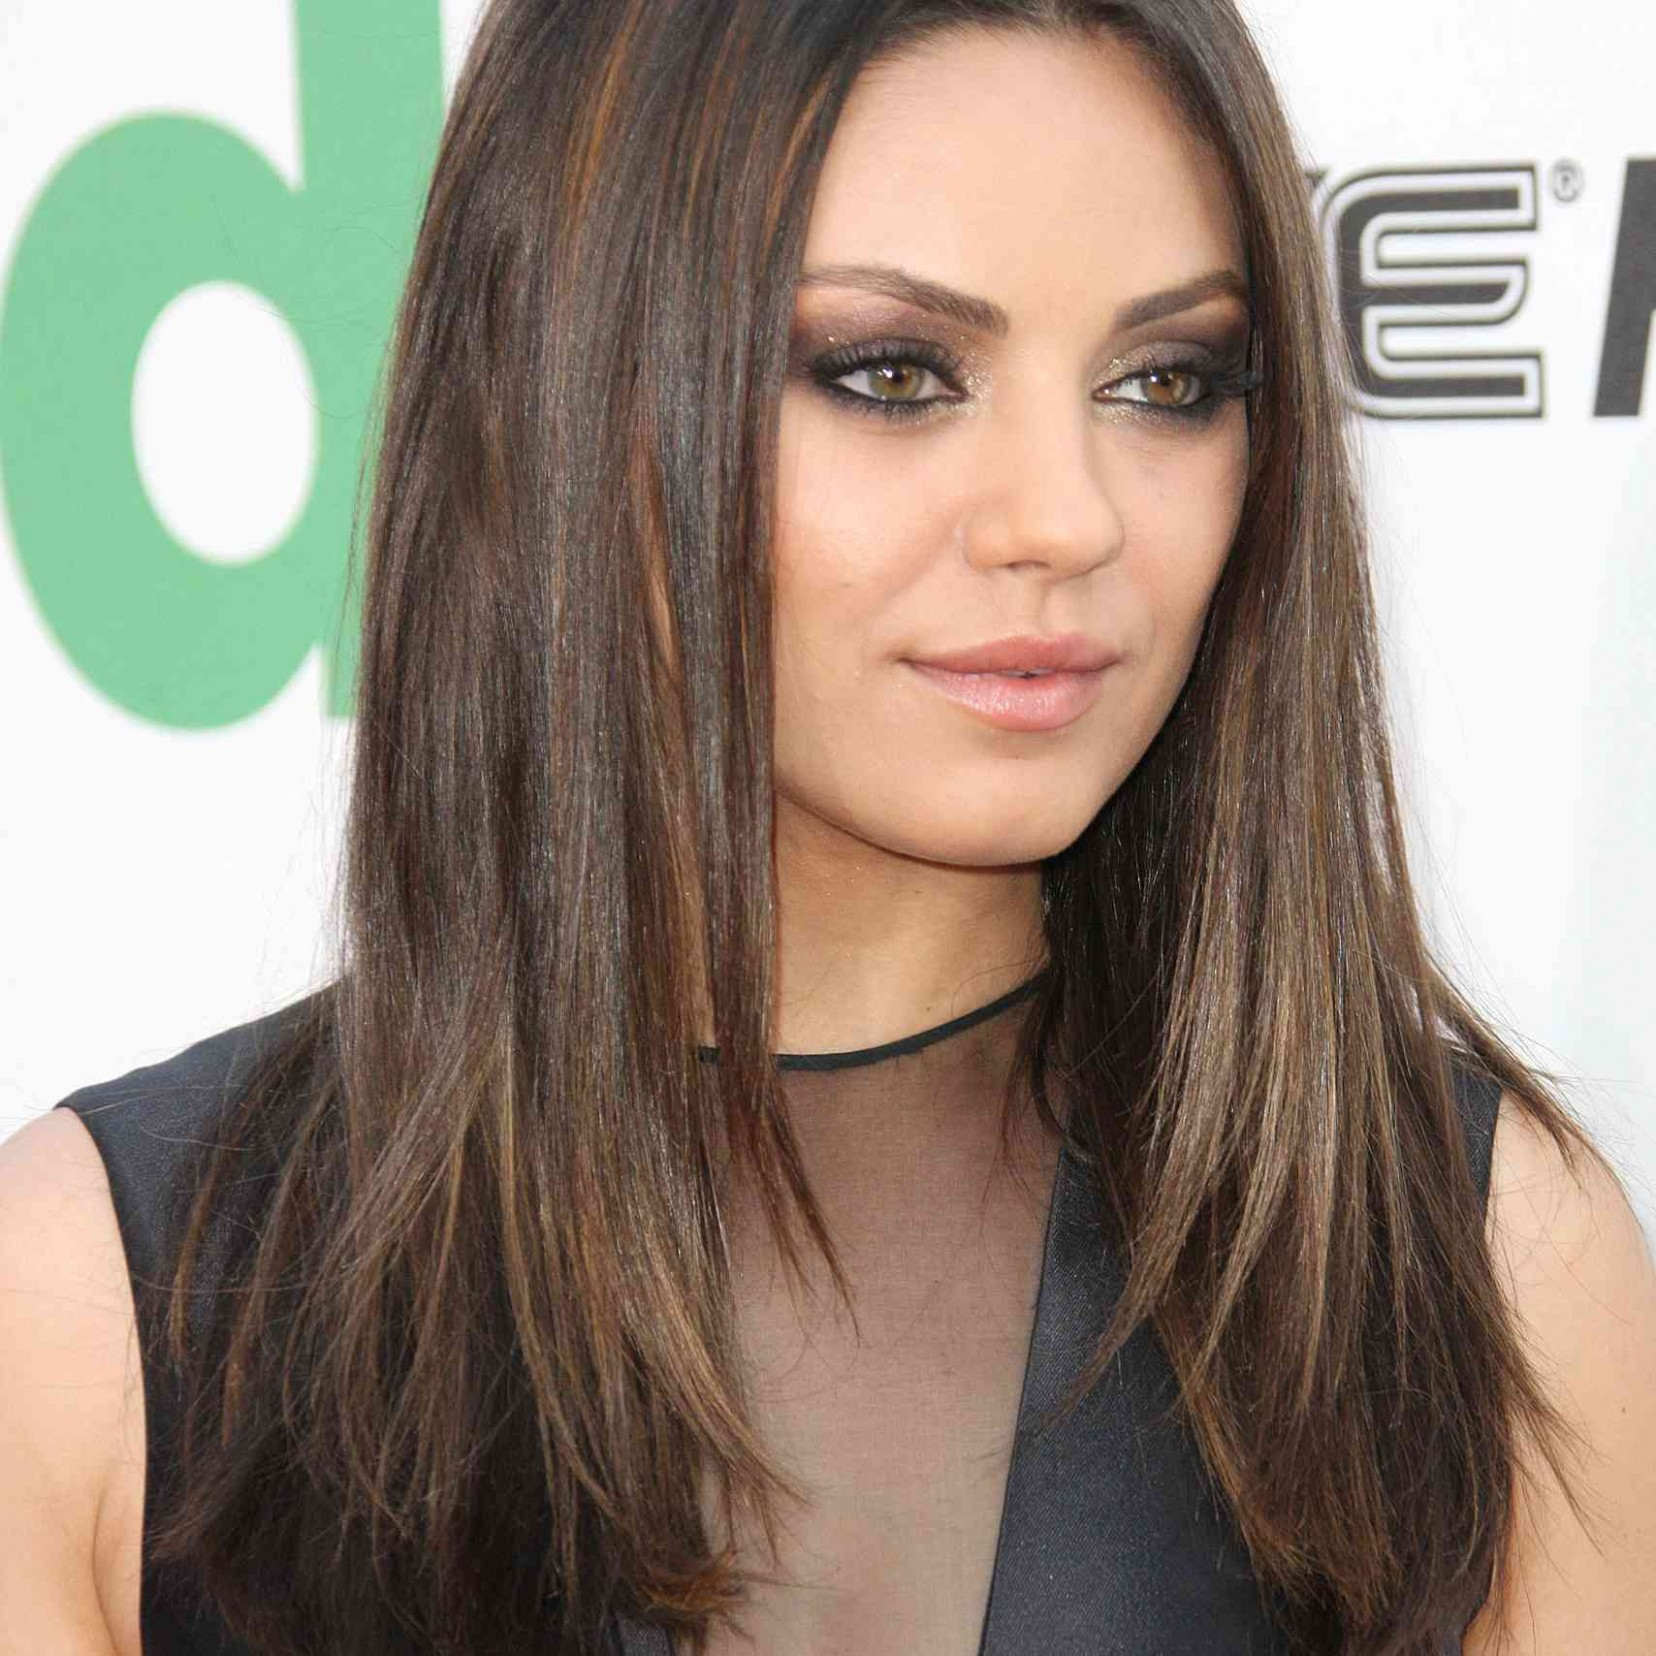 10 Of The Best Hairstyles For Round Faces Flattering Hairstyles For Round Faces